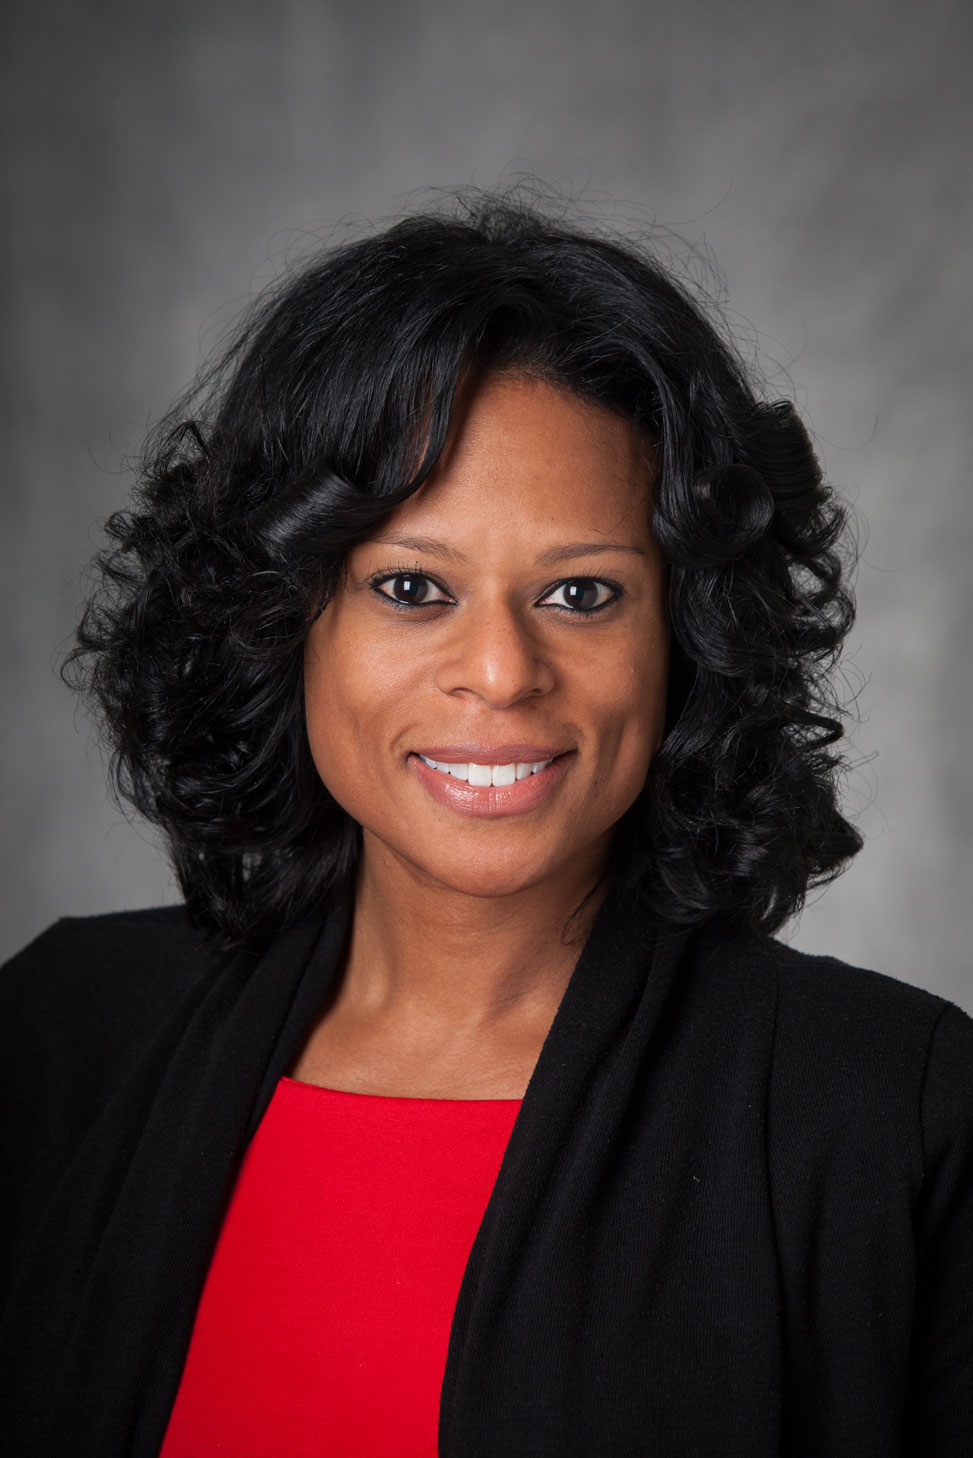 Rep. Nicole Collier. 1st Vice-Chair